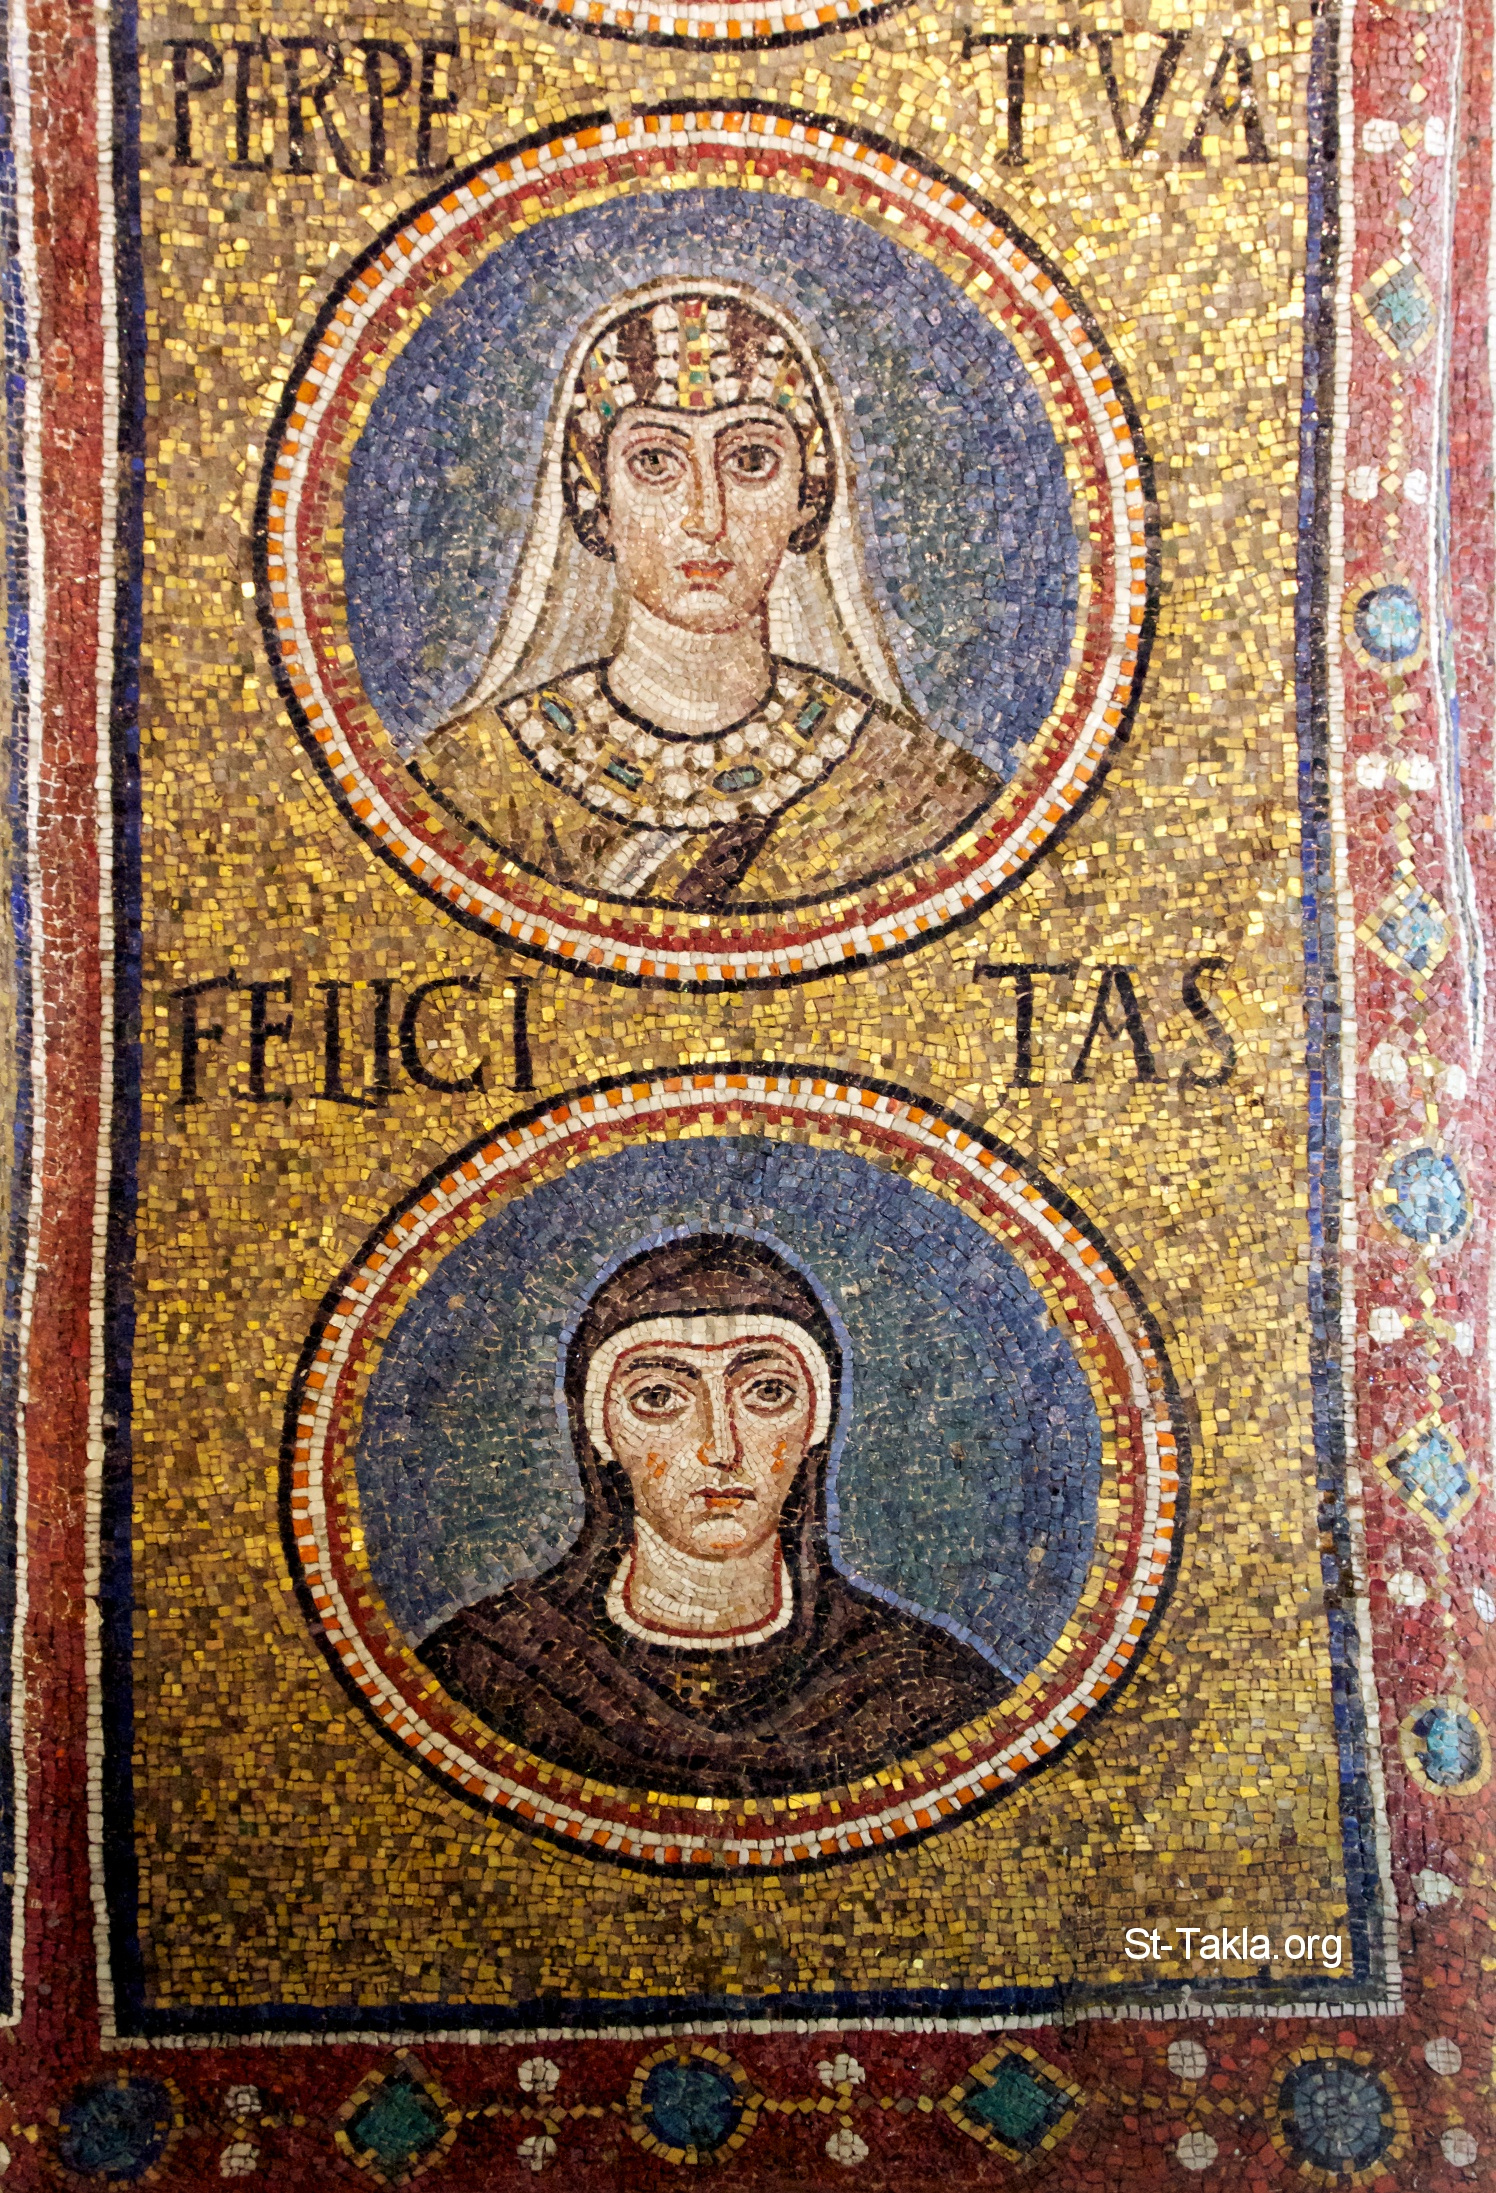 """the passion of st perpetua st Passion of saints felicity and felicitas, by tertullian  """"saint perpetua"""" catholicsaintsinfo 15 march 2018 web 10 june 2018  share this."""